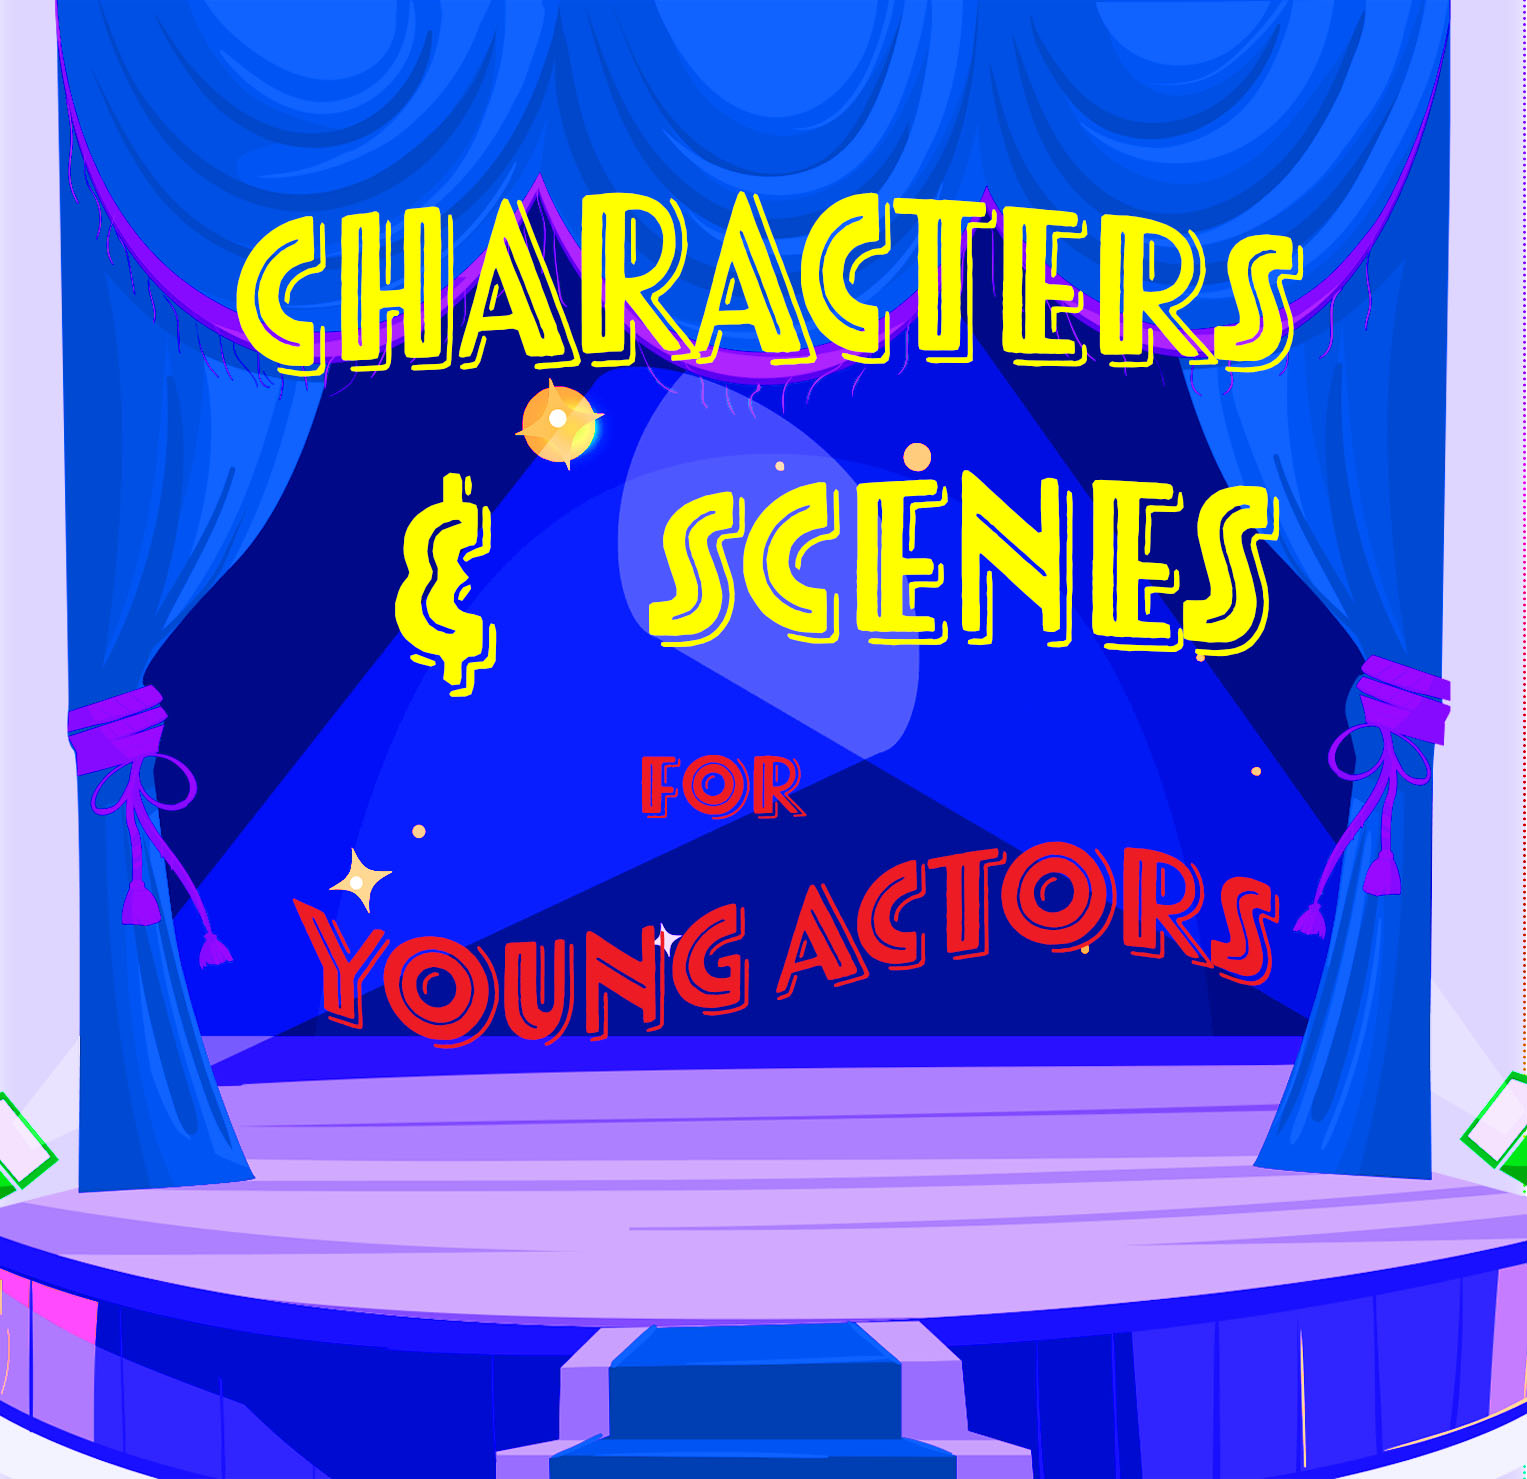 Characters and Scenes edited